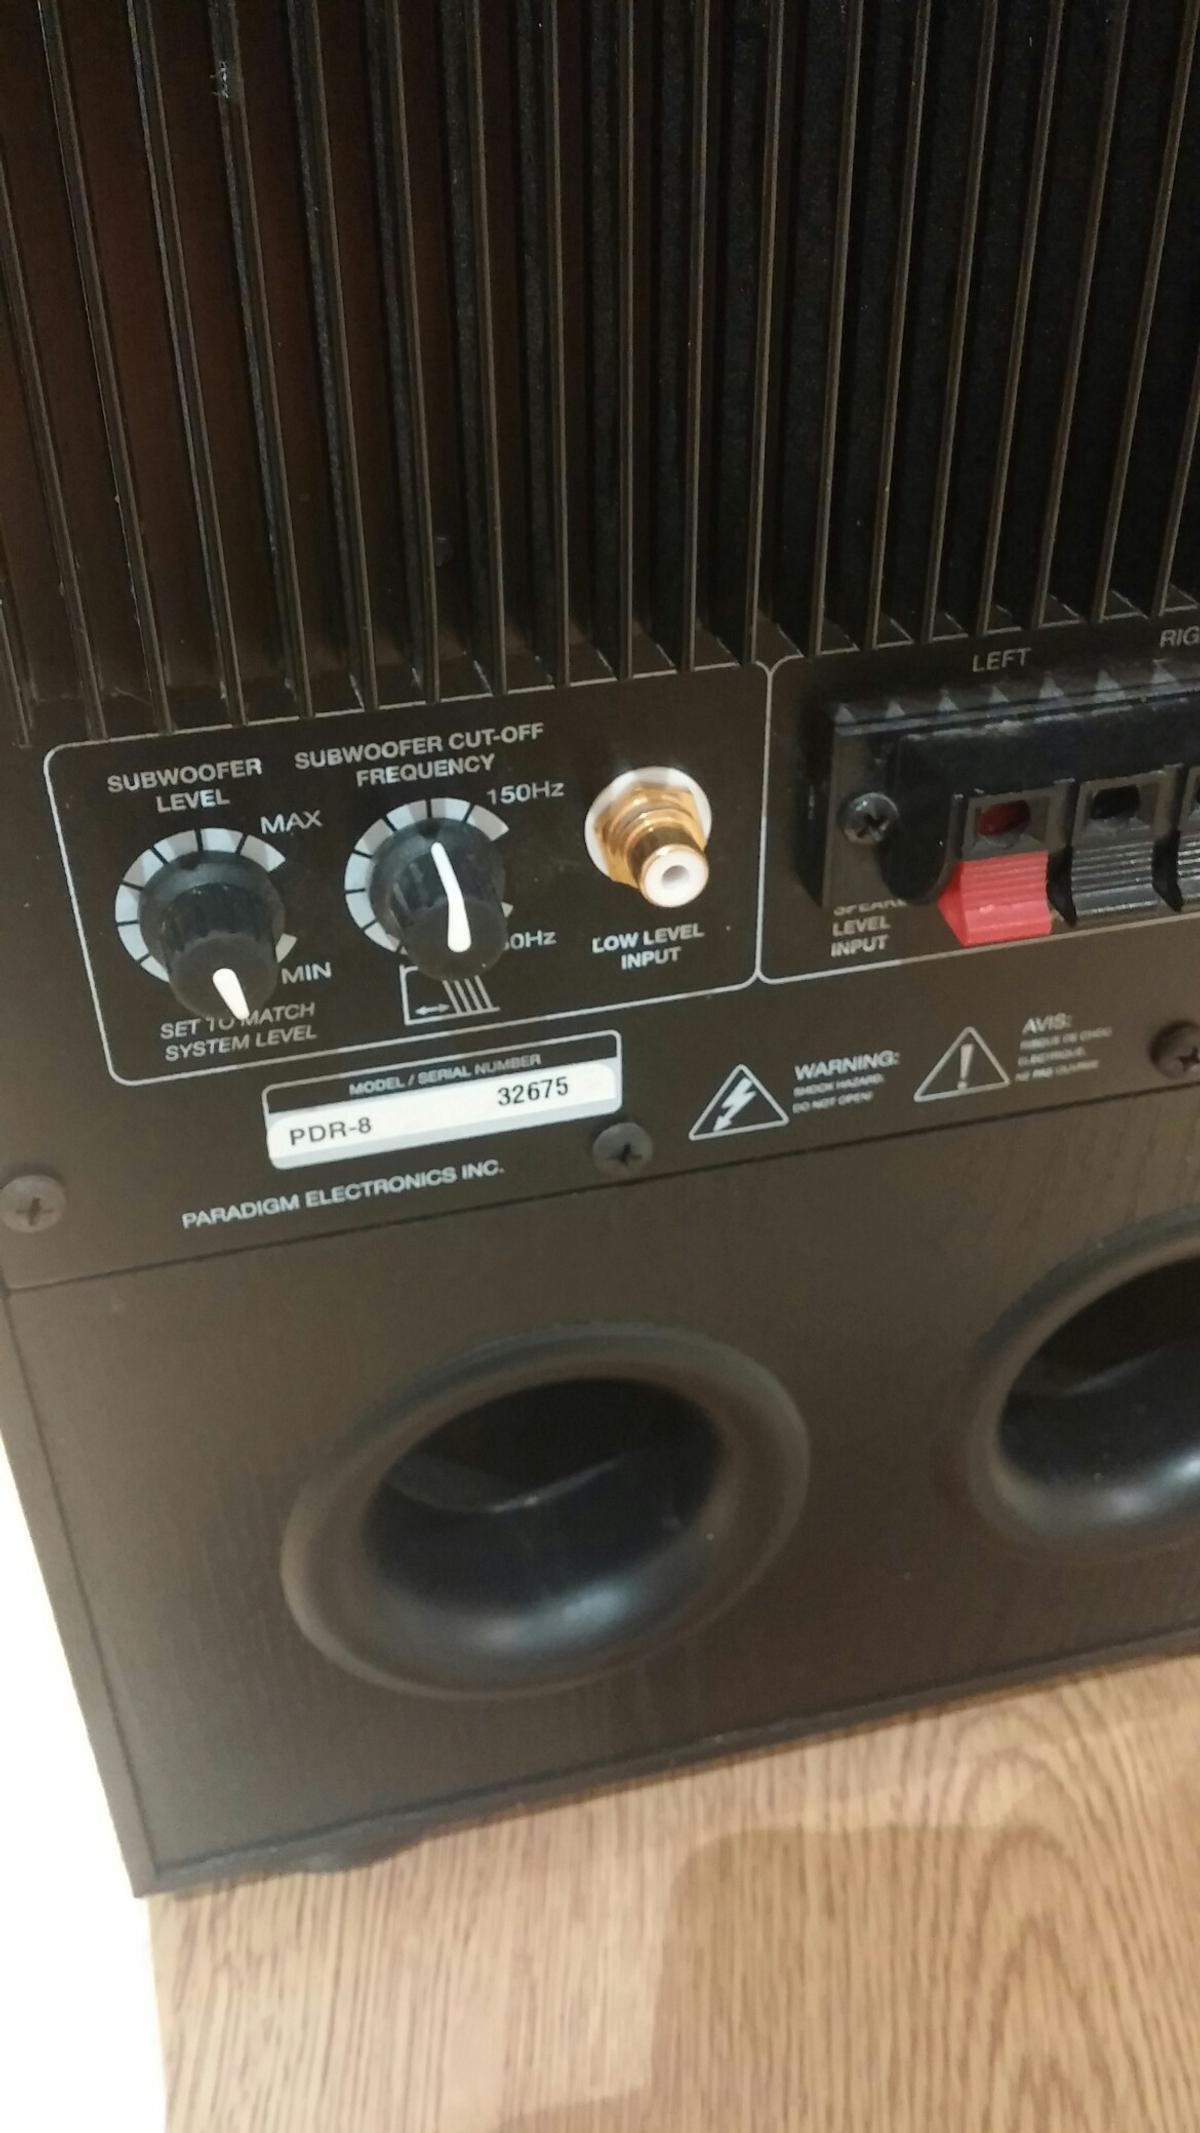 Paradigm pdr-8 subwoofer in DN35 Cleethorpes for £20 00 for